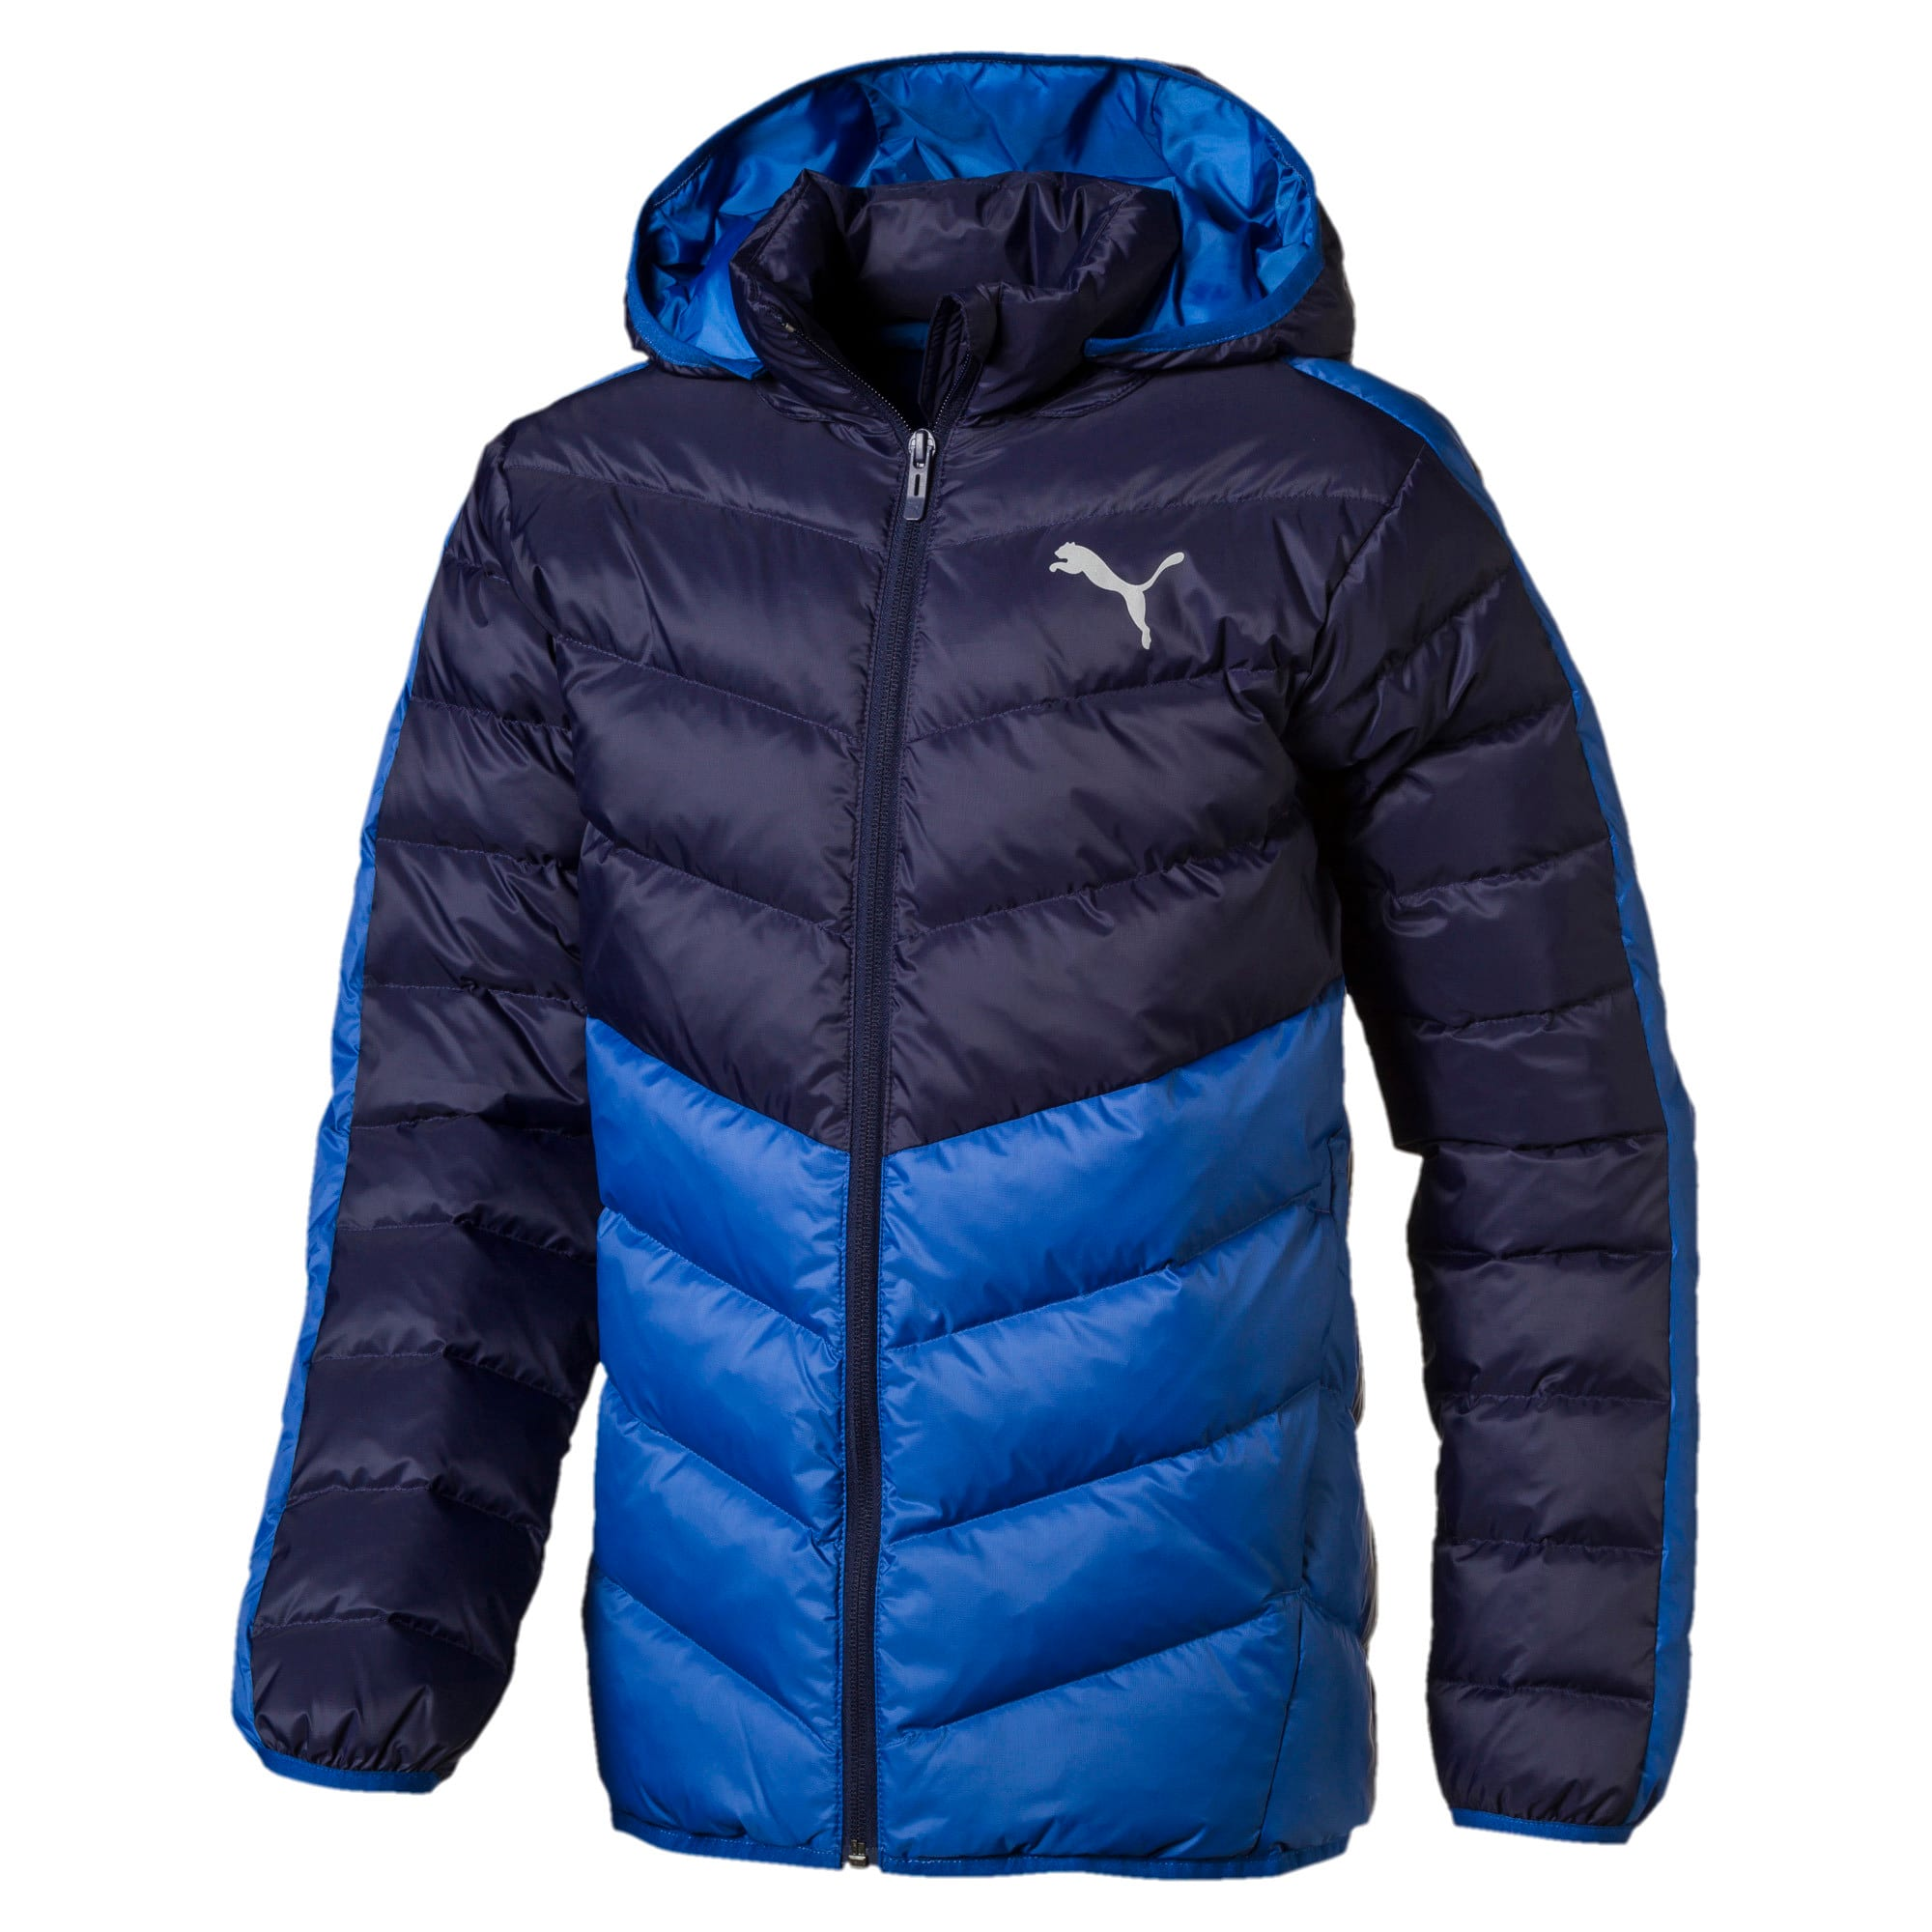 Thumbnail 1 of Active Jungen Jacke, Galaxy Blue-Peacoat, medium